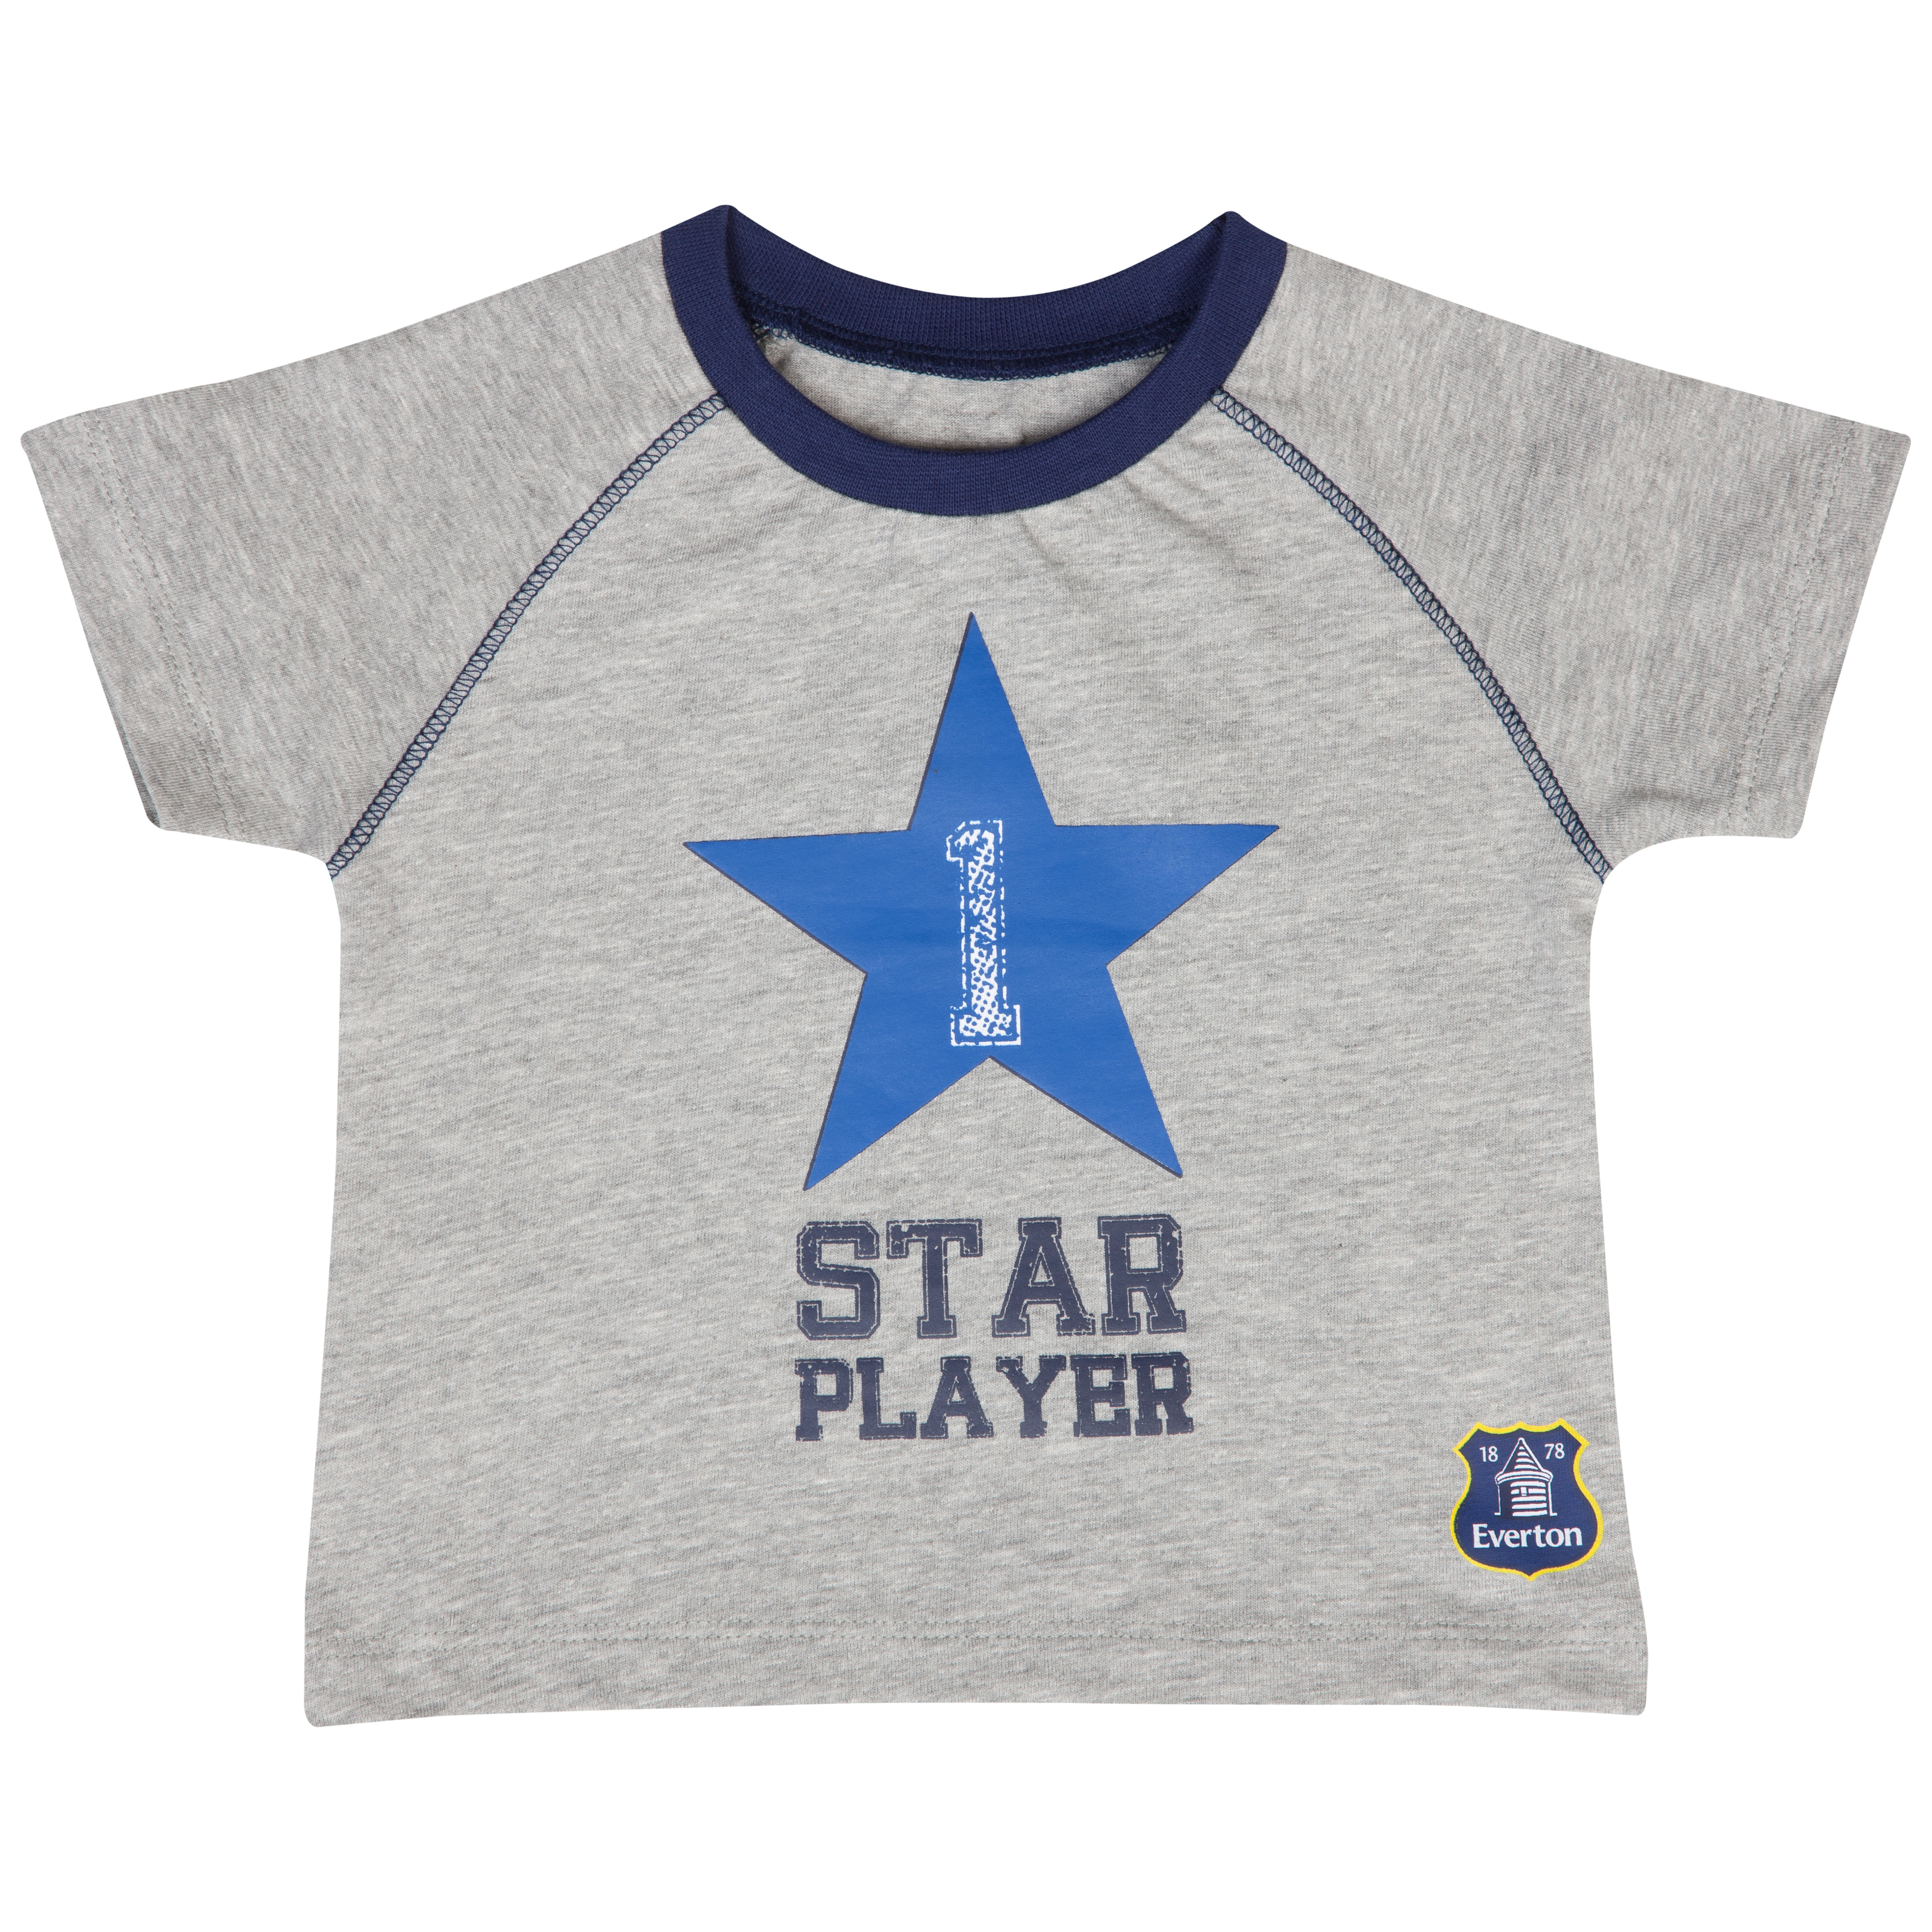 Everton Star T-Shirt - Grey/Blue - Baby